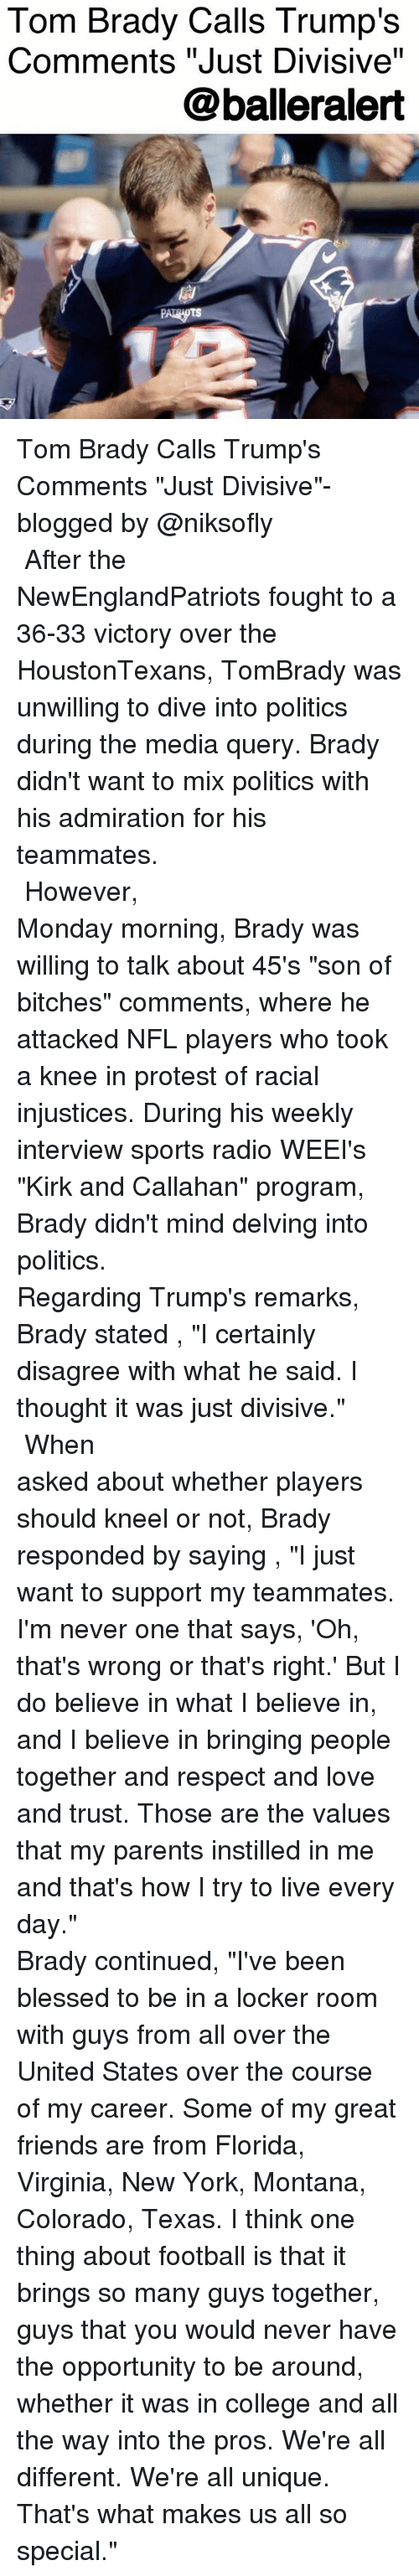 "Blessed, College, and Football: Tom Brady Calls Trump's  Comments ""Just Divisive""  @balleralert Tom Brady Calls Trump's Comments ""Just Divisive""- blogged by @niksofly ⠀⠀⠀⠀⠀⠀⠀⠀⠀⠀⠀⠀⠀⠀⠀⠀⠀⠀⠀⠀⠀⠀⠀⠀⠀⠀⠀⠀⠀⠀⠀⠀⠀ After the NewEnglandPatriots fought to a 36-33 victory over the HoustonTexans, TomBrady was unwilling to dive into politics during the media query. Brady didn't want to mix politics with his admiration for his teammates. ⠀⠀⠀⠀⠀⠀⠀⠀⠀⠀⠀⠀⠀⠀⠀⠀⠀⠀⠀⠀⠀⠀⠀⠀⠀⠀⠀⠀⠀⠀⠀⠀⠀ However, Monday morning, Brady was willing to talk about 45's ""son of bitches"" comments, where he attacked NFL players who took a knee in protest of racial injustices. During his weekly interview sports radio WEEI's ""Kirk and Callahan"" program, Brady didn't mind delving into politics. ⠀⠀⠀⠀⠀⠀⠀⠀⠀⠀⠀⠀⠀⠀⠀⠀⠀⠀⠀⠀⠀⠀⠀⠀⠀⠀⠀⠀⠀⠀⠀⠀⠀ Regarding Trump's remarks, Brady stated , ""I certainly disagree with what he said. I thought it was just divisive."" ⠀⠀⠀⠀⠀⠀⠀⠀⠀⠀⠀⠀⠀⠀⠀⠀⠀⠀⠀⠀⠀⠀⠀⠀⠀⠀⠀⠀⠀⠀⠀⠀⠀ When asked about whether players should kneel or not, Brady responded by saying , ""I just want to support my teammates. I'm never one that says, 'Oh, that's wrong or that's right.' But I do believe in what I believe in, and I believe in bringing people together and respect and love and trust. Those are the values that my parents instilled in me and that's how I try to live every day."" ⠀⠀⠀⠀⠀⠀⠀⠀⠀⠀⠀⠀⠀⠀⠀⠀⠀⠀⠀⠀⠀⠀⠀⠀⠀⠀⠀⠀⠀⠀⠀⠀⠀ Brady continued, ""I've been blessed to be in a locker room with guys from all over the United States over the course of my career. Some of my great friends are from Florida, Virginia, New York, Montana, Colorado, Texas. I think one thing about football is that it brings so many guys together, guys that you would never have the opportunity to be around, whether it was in college and all the way into the pros. We're all different. We're all unique. That's what makes us all so special."""